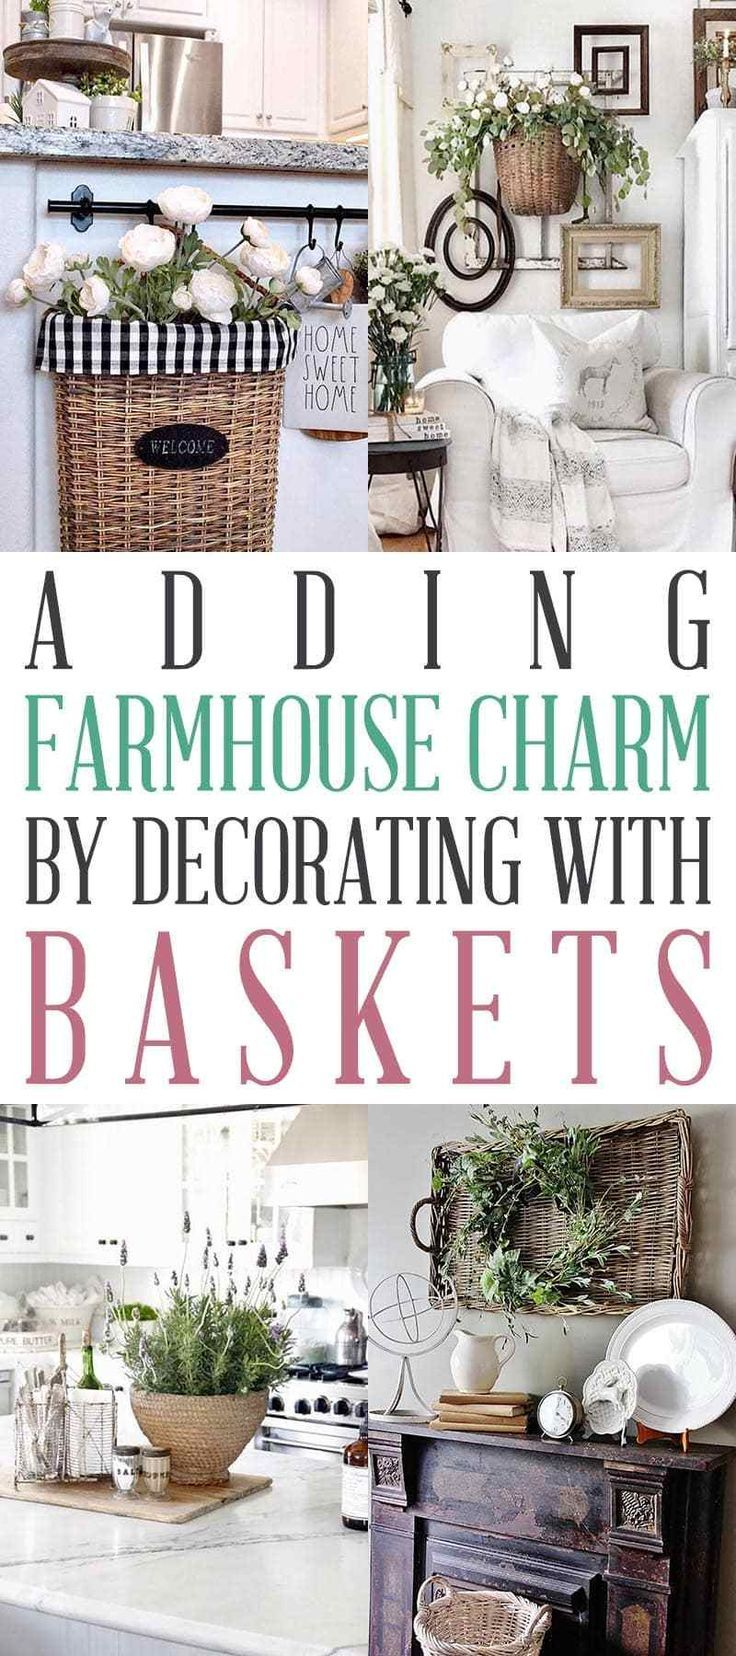 Adding Farmhouse Charm by Decorating With Baskets The